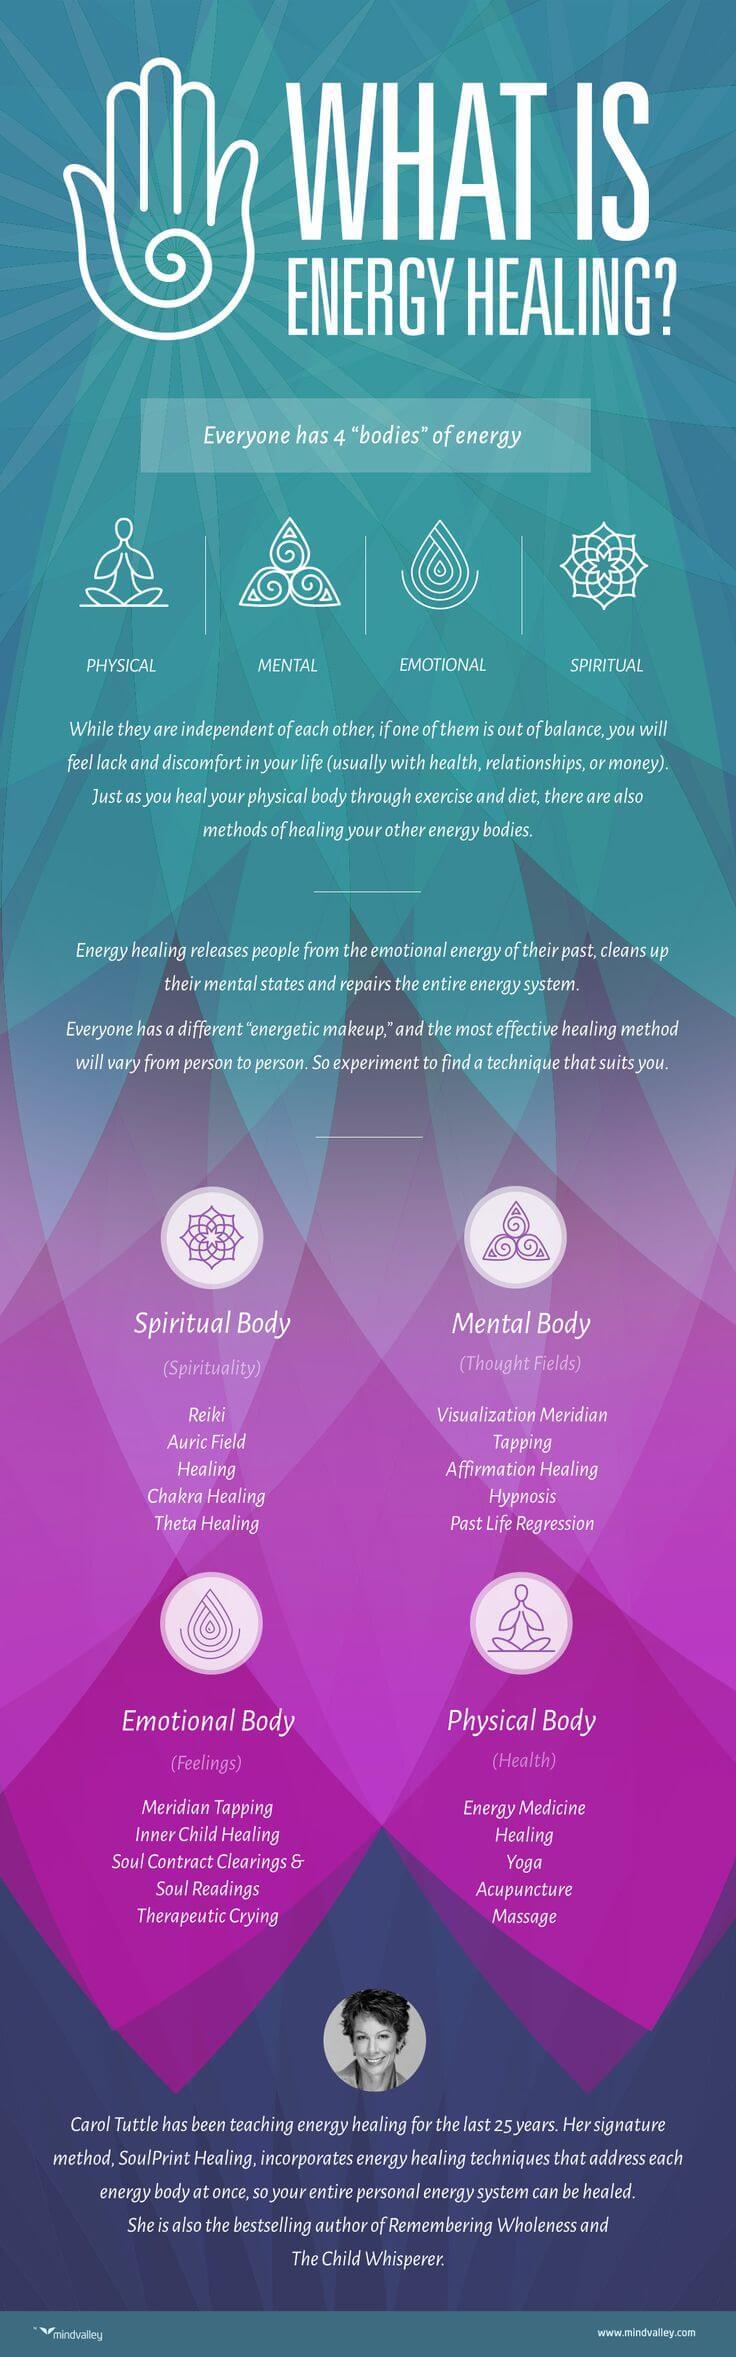 Image titled How to Find Your Happiness Within with Energy Healing